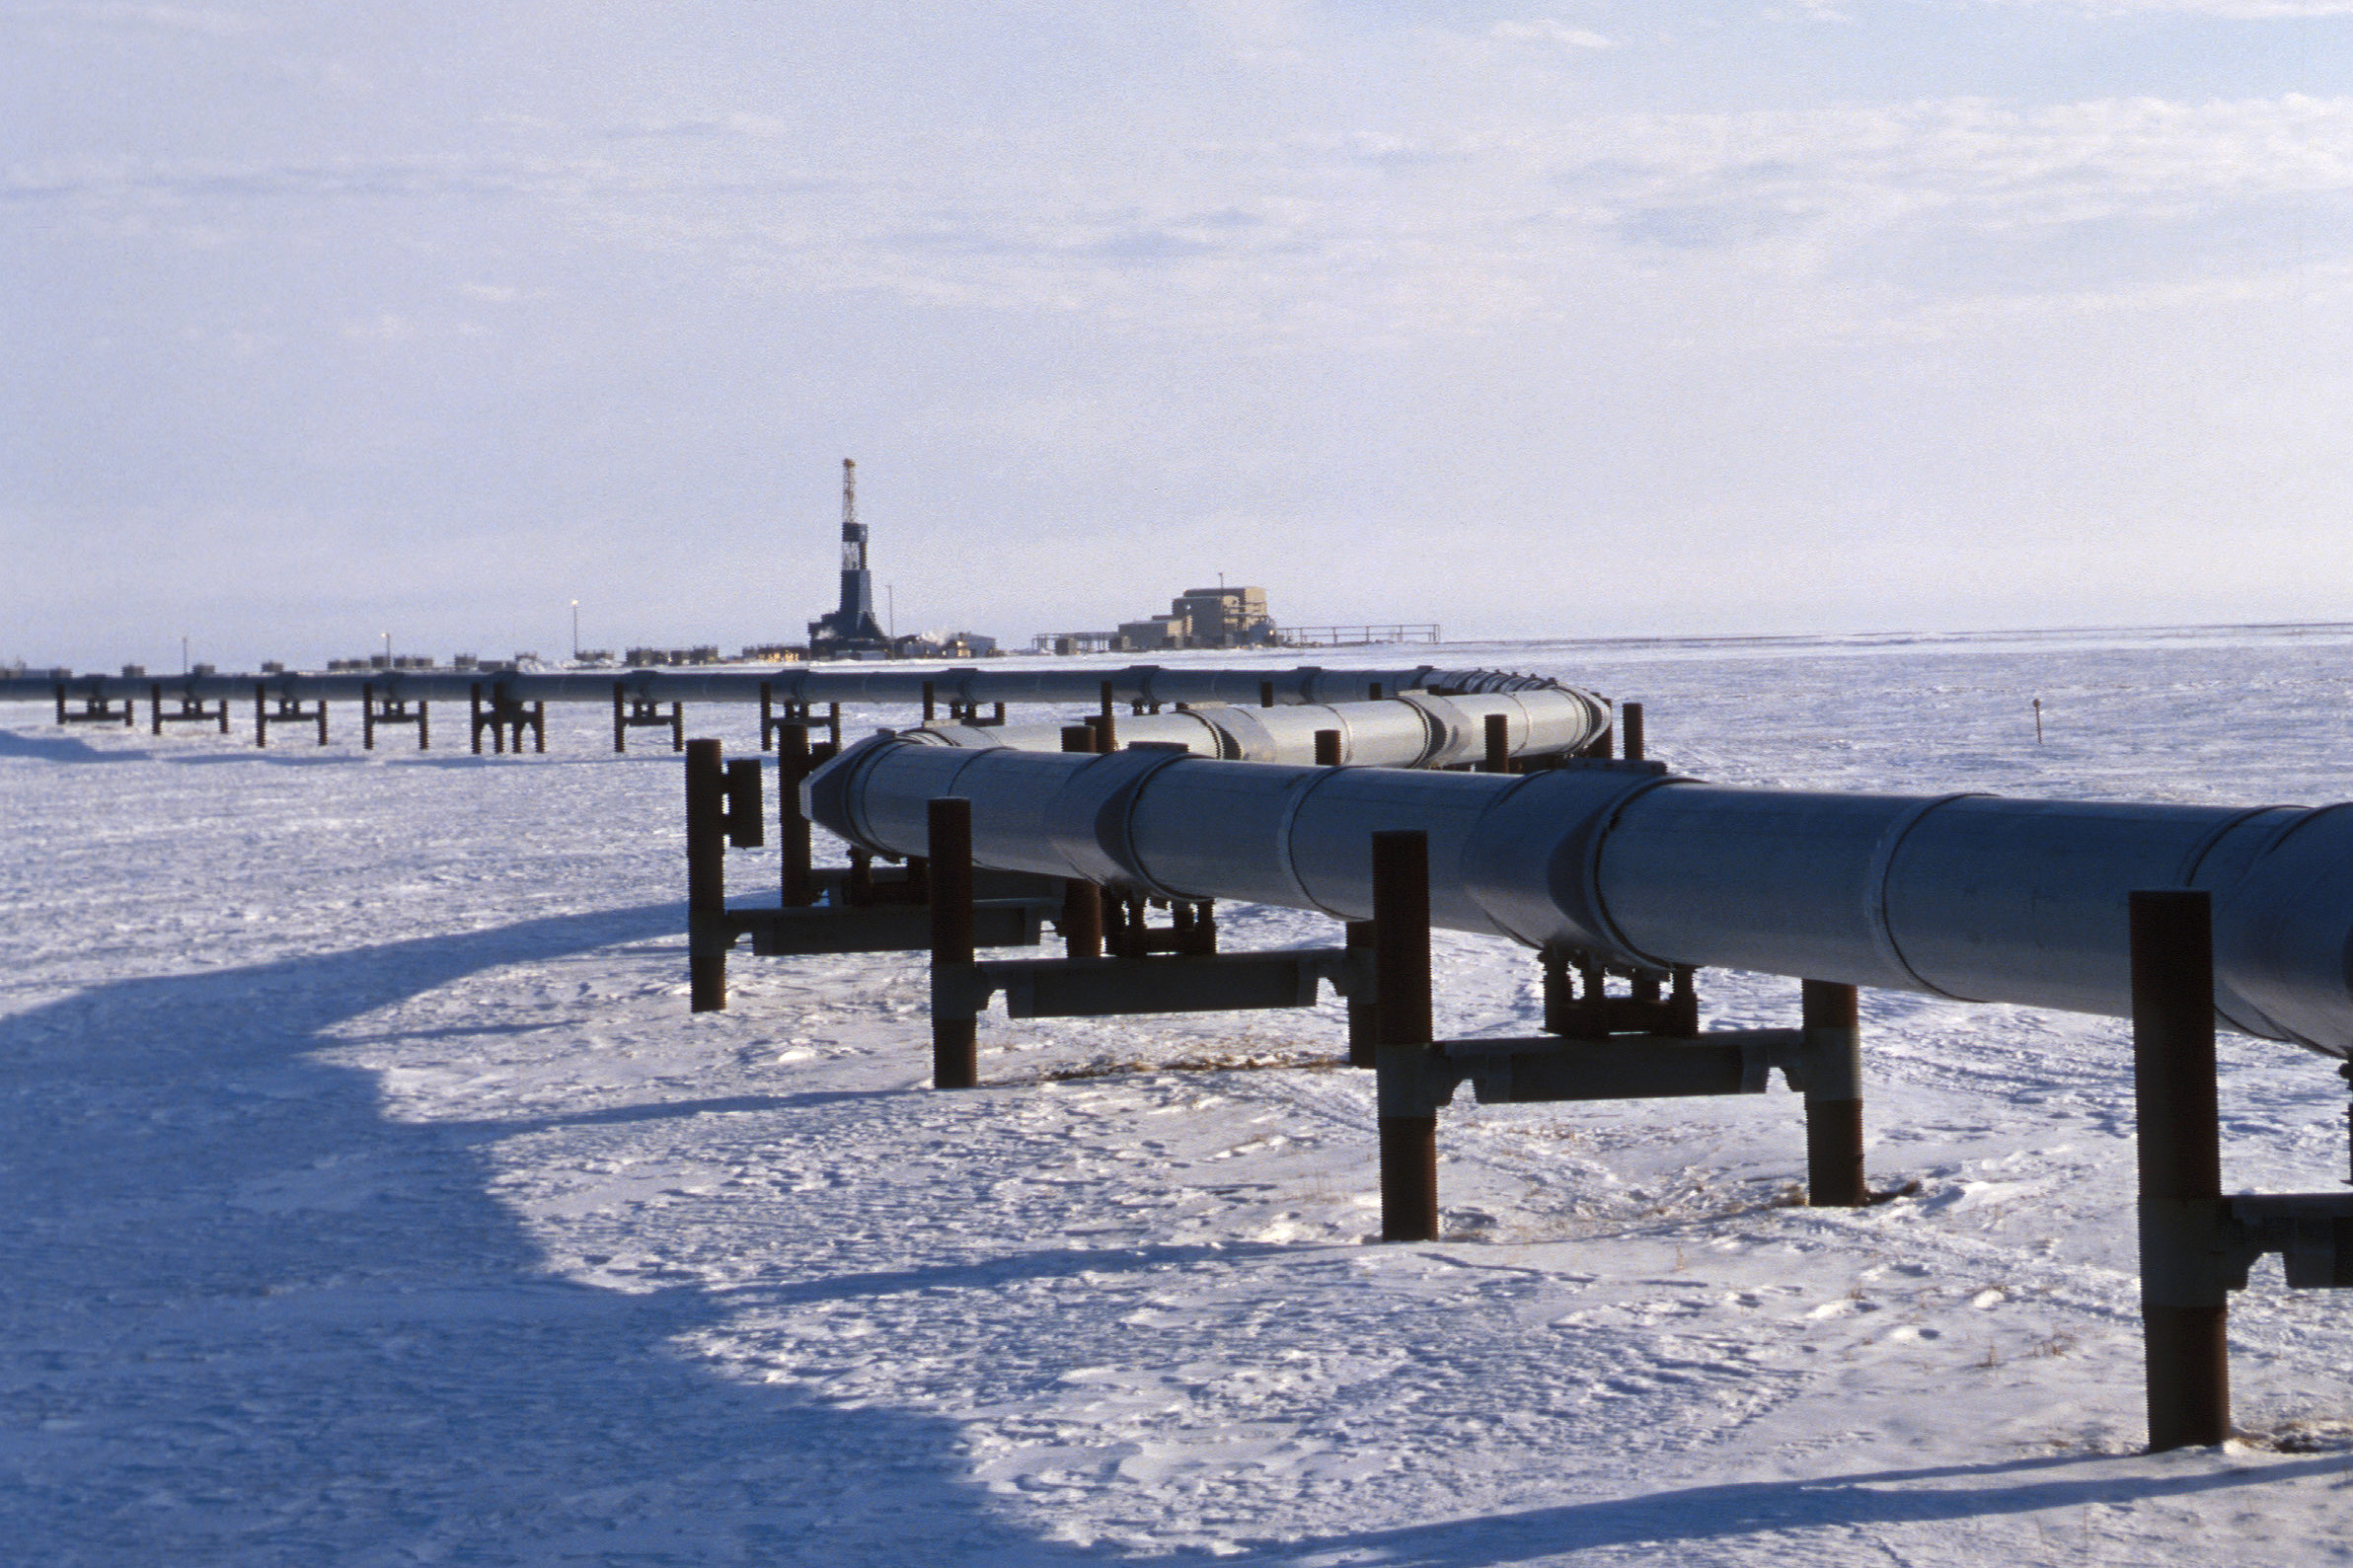 Pipeline in a snow-covered landscape